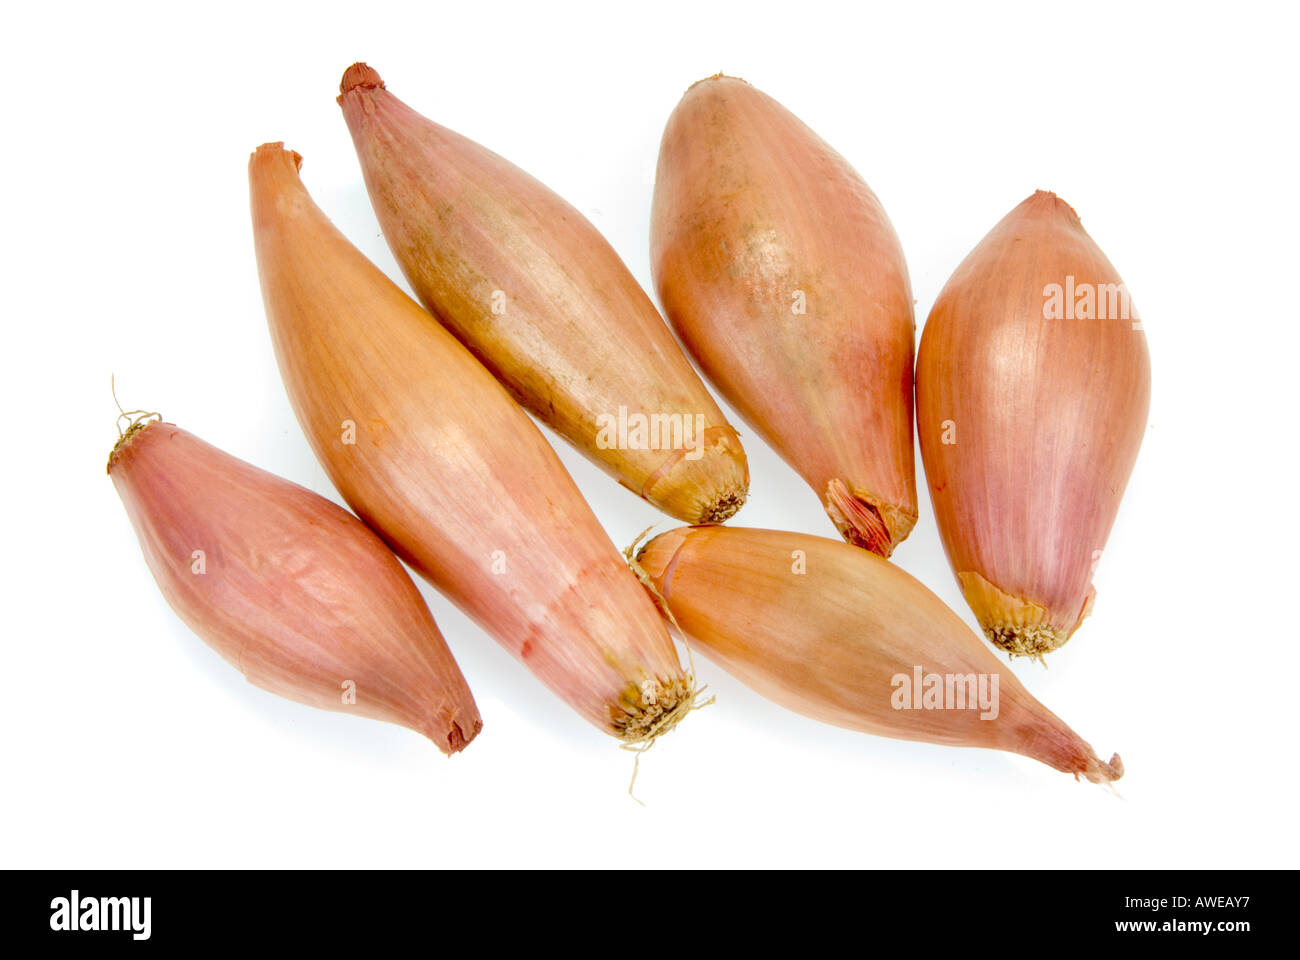 how to grow shallots vs green onions